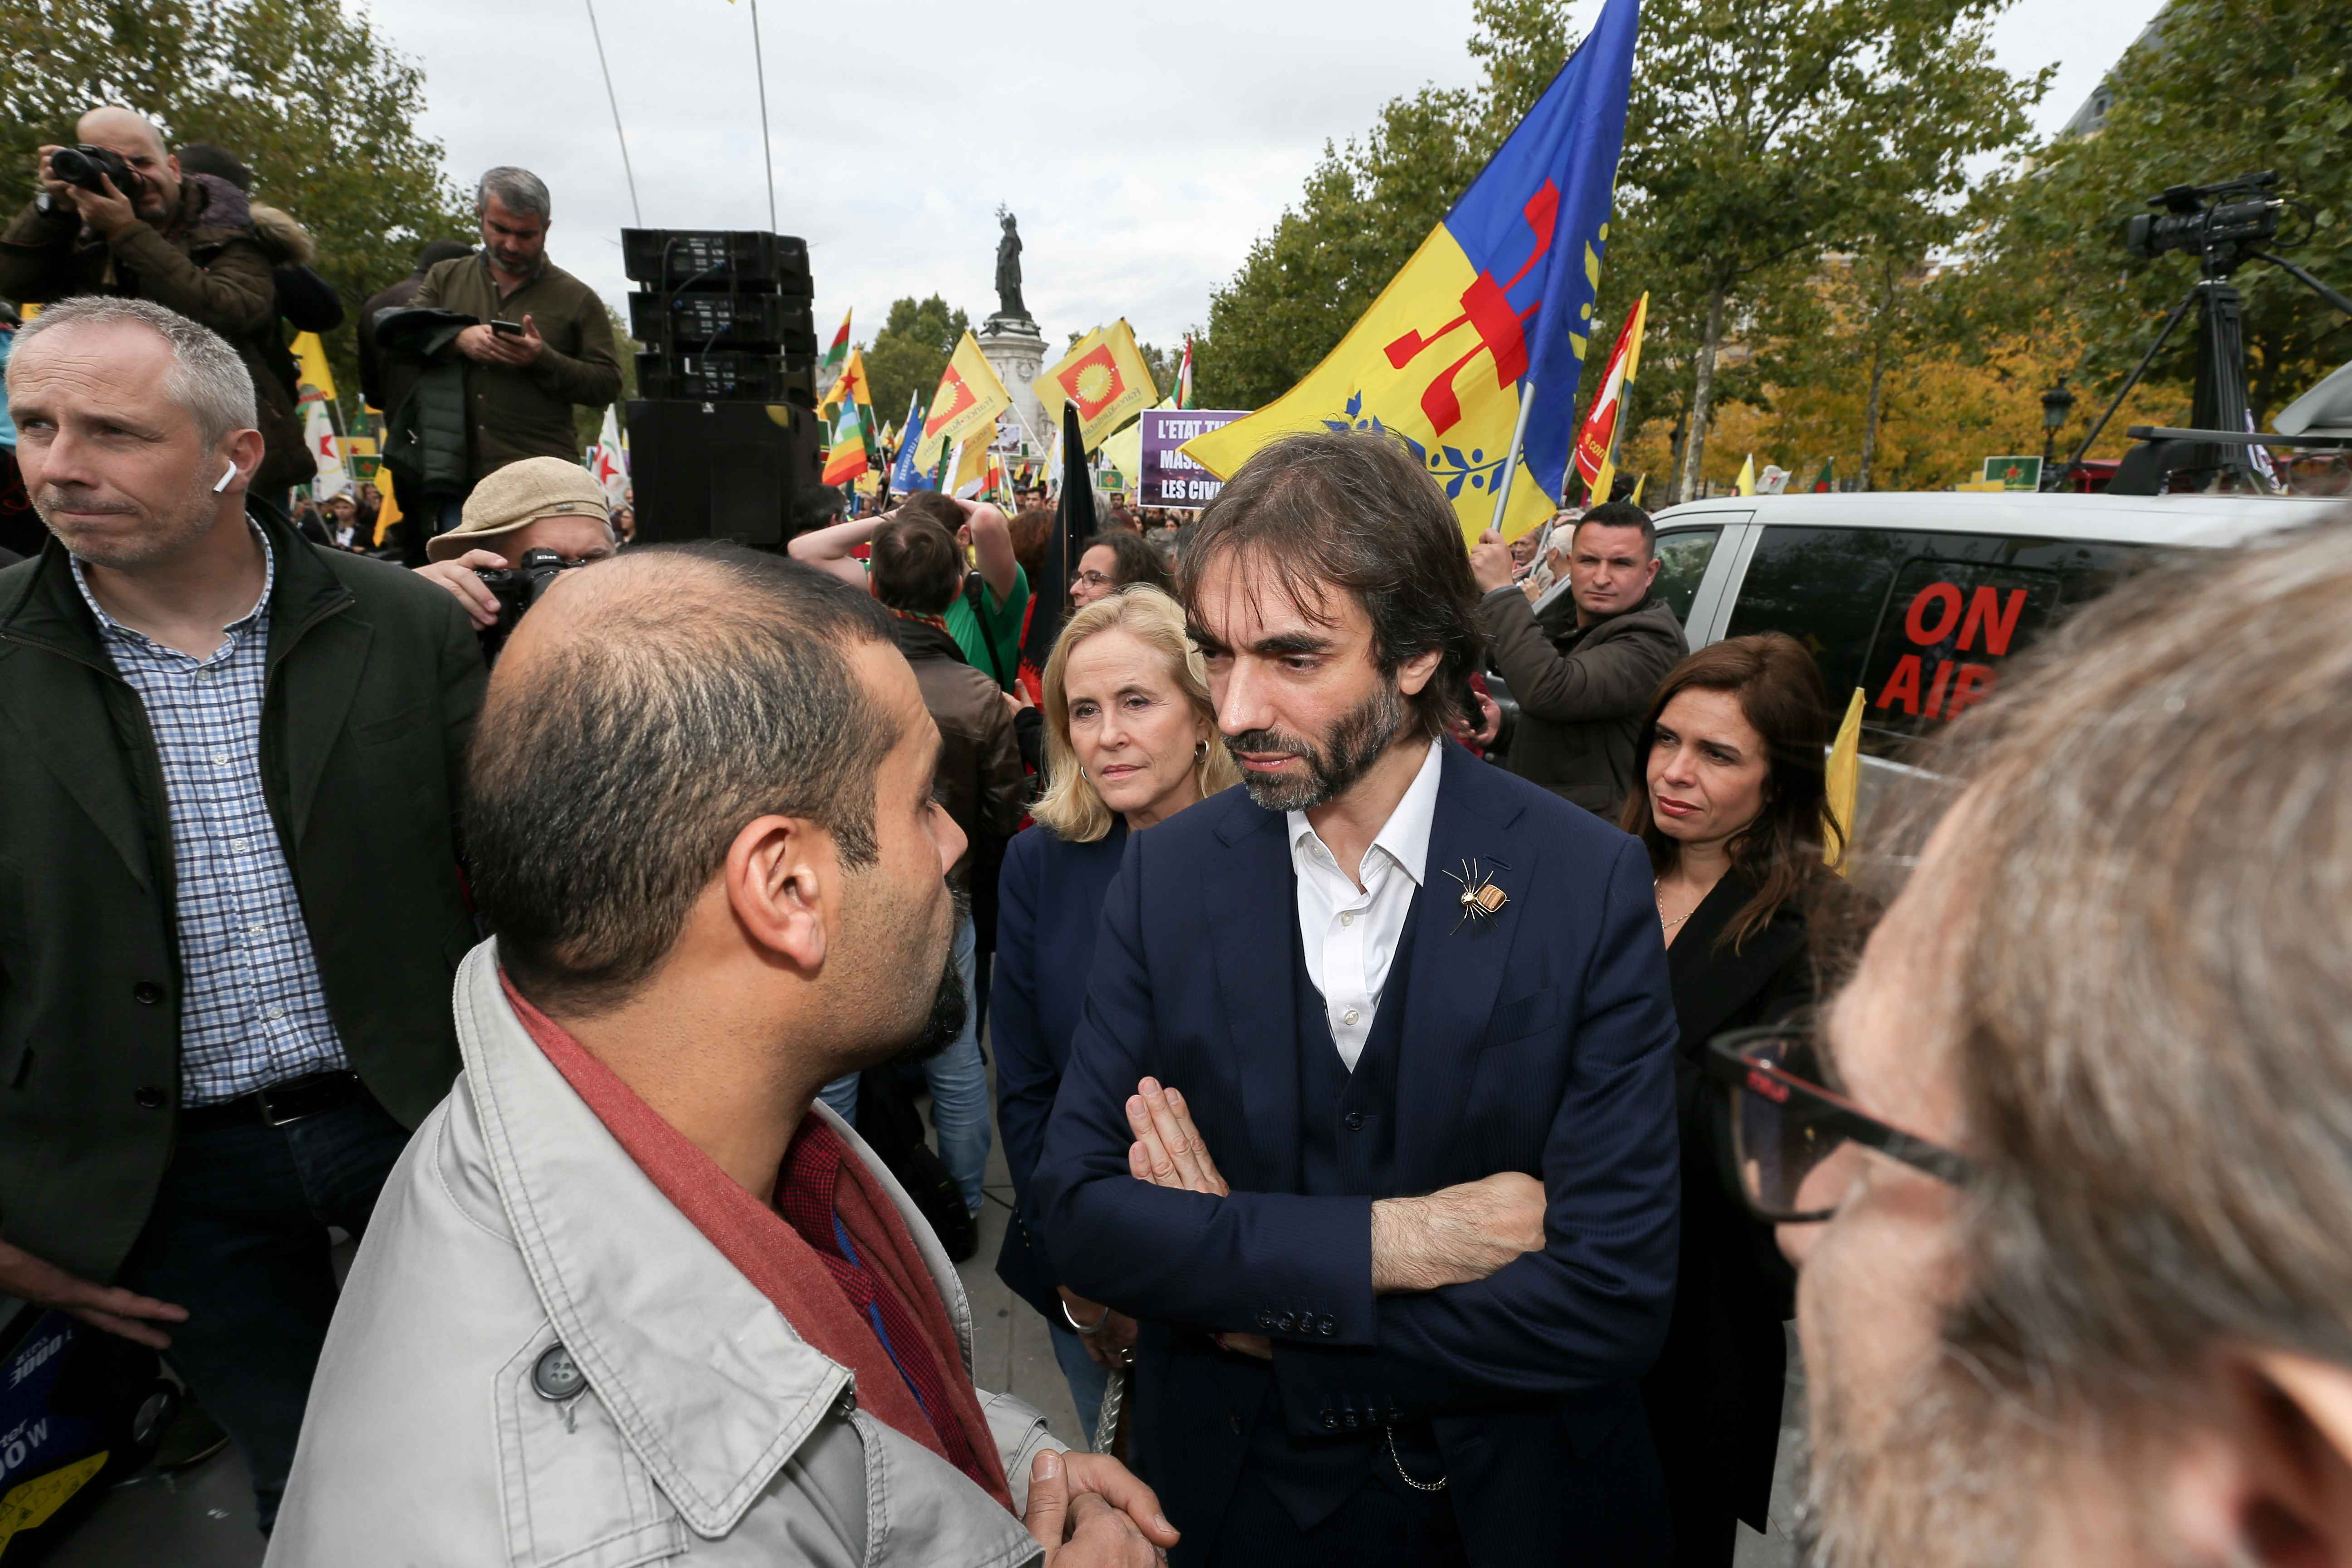 French member of Parliament and candidate for Paris' mayoral election, mathematician Cedric Villani (C) takes part on October 12, 2019 in Paris in a demonstration in support of the Kurds and against the Turkish offensive in Syria. On October 9, 2019, the T